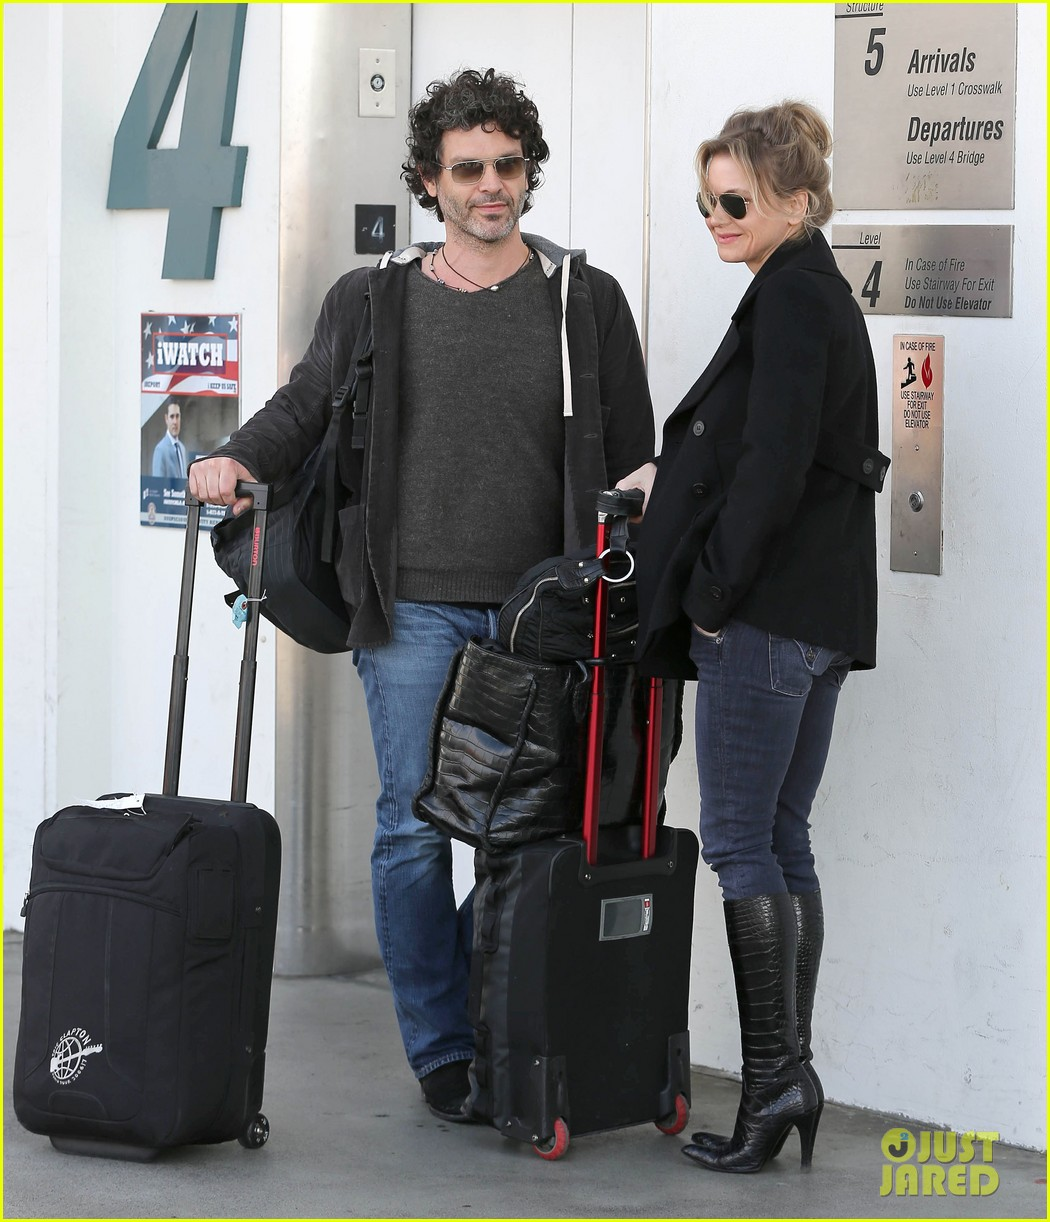 renee zellweger departs lax after chicago cast oscar news 072810585